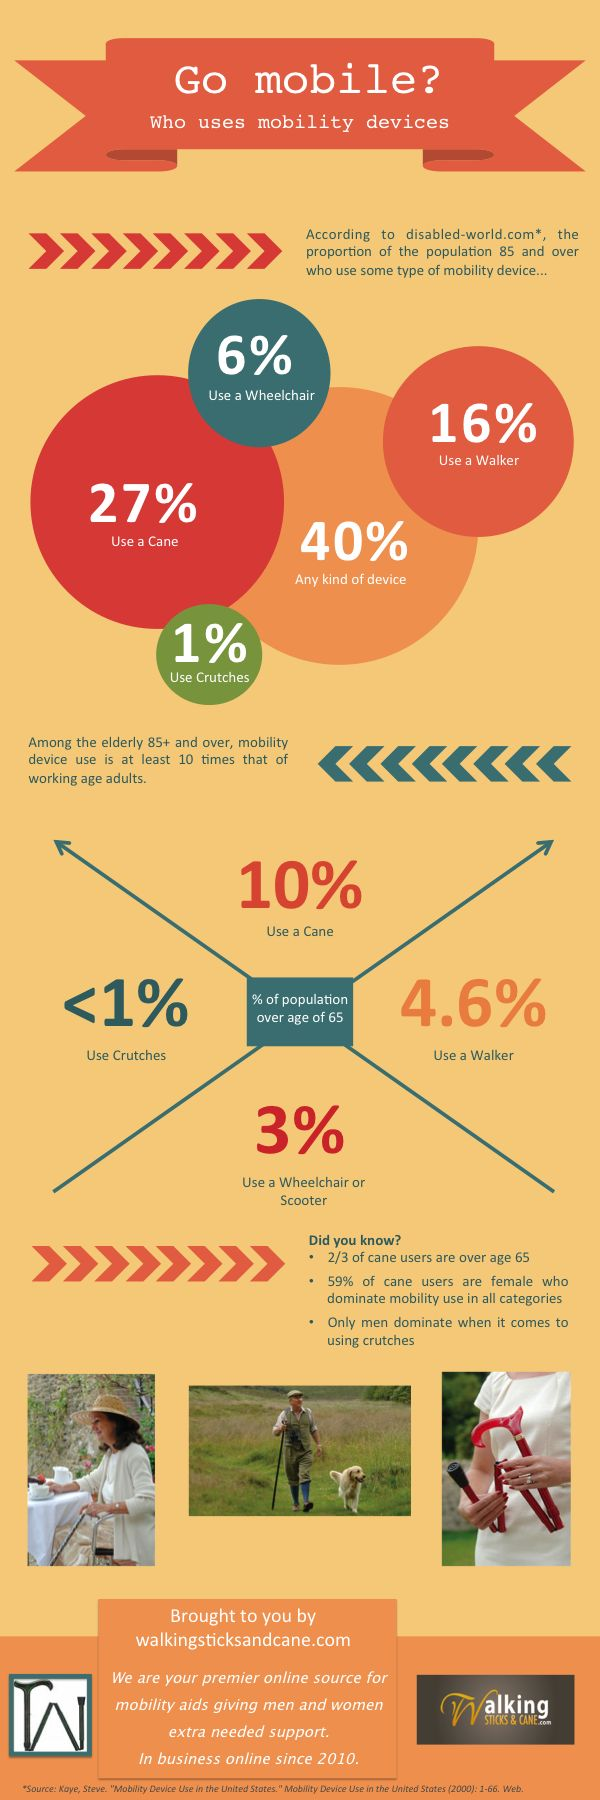 Walking canes for sale elderly mobility usage infographic